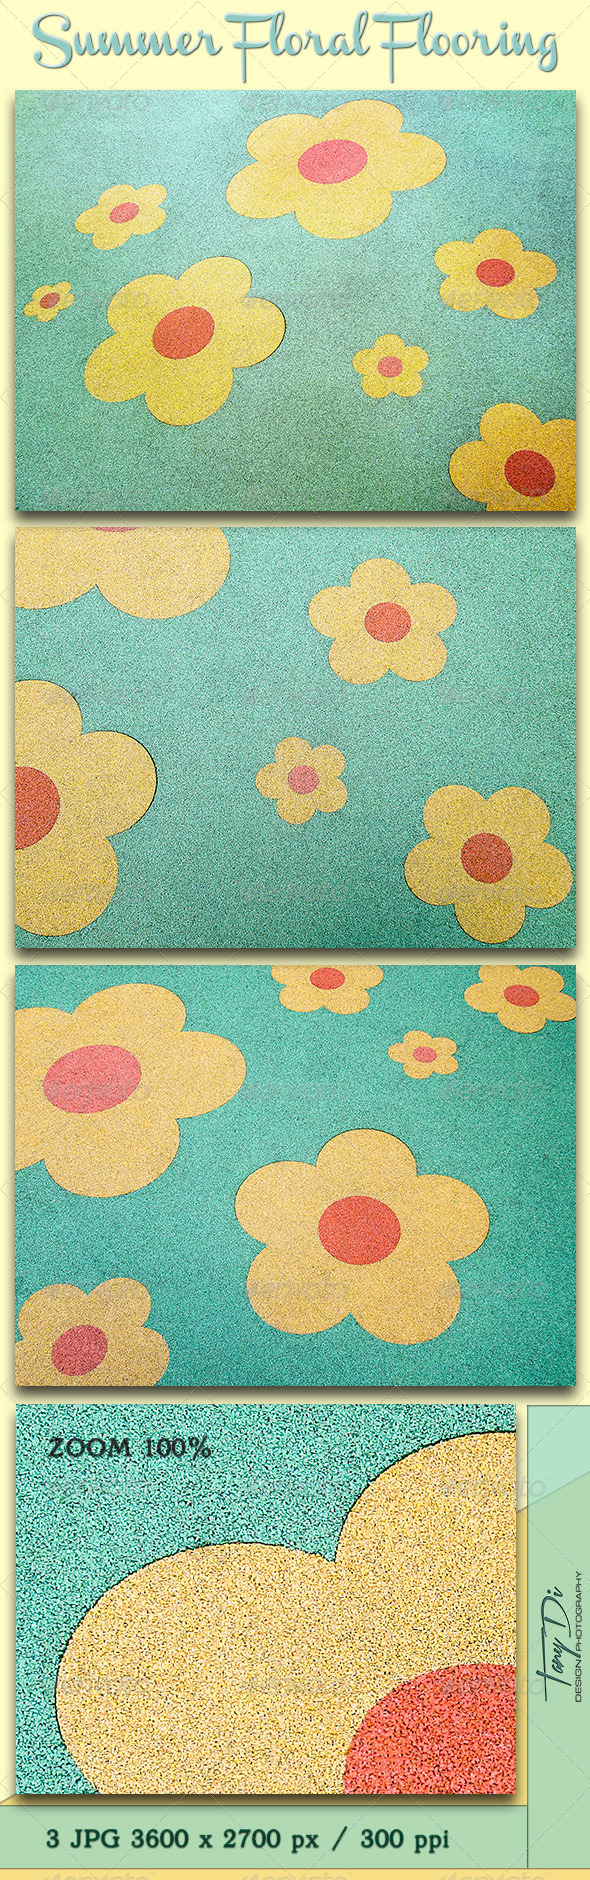 Summer Floral Flooring - Miscellaneous Textures